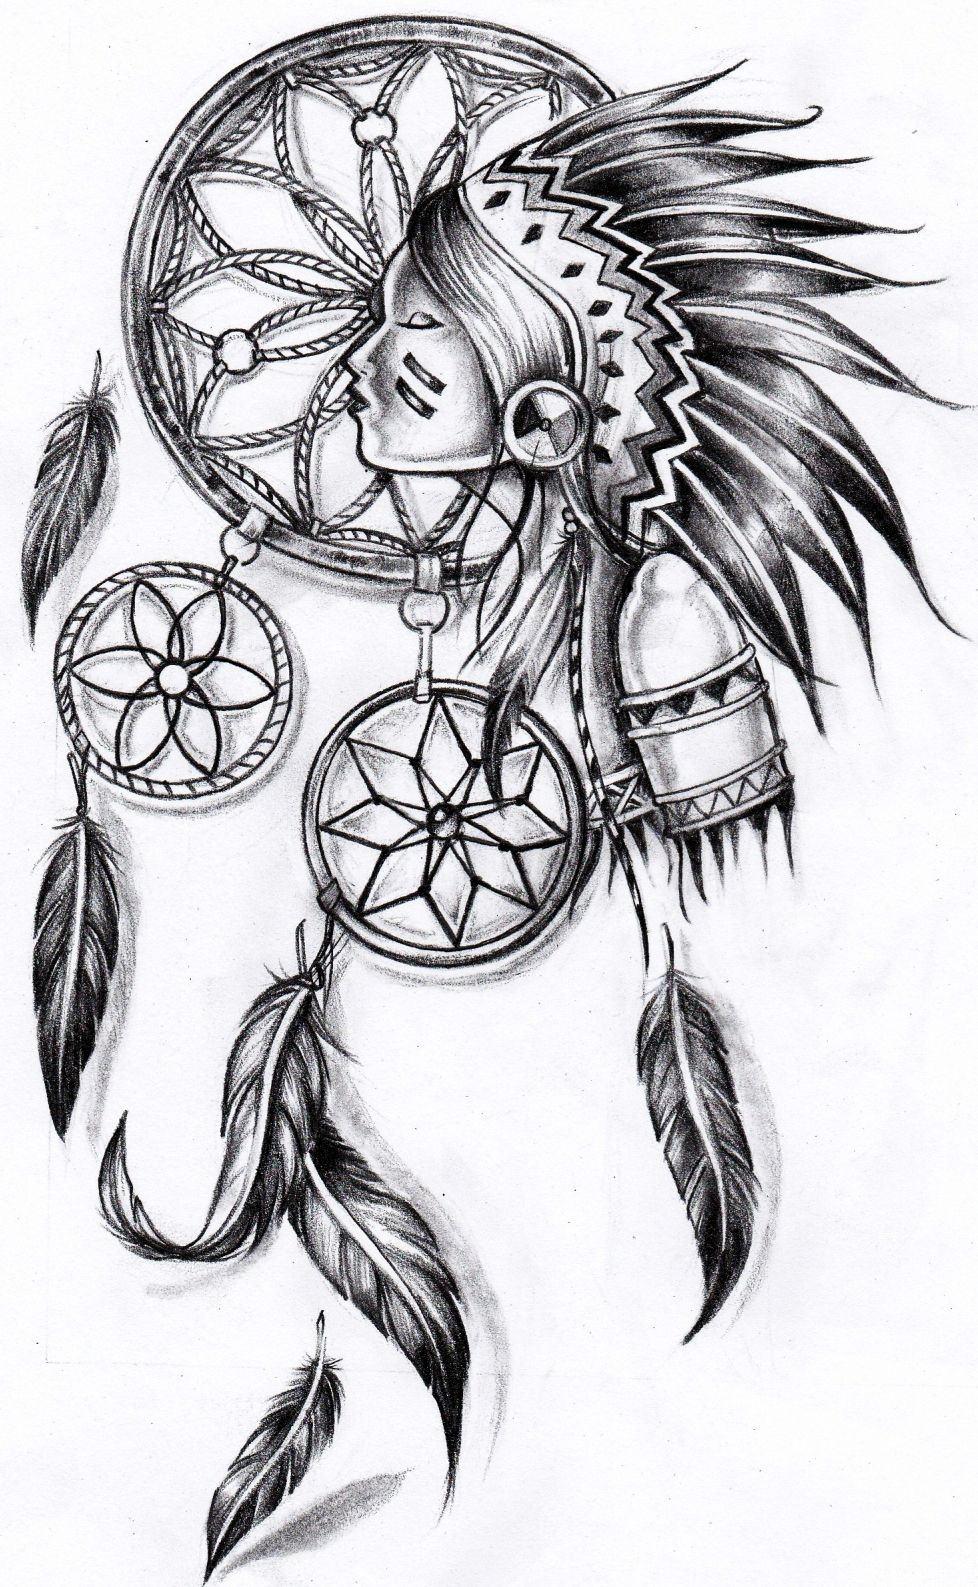 Attrape reve dessin google idee tatoo pinterest - Tatouage attrape reve homme ...